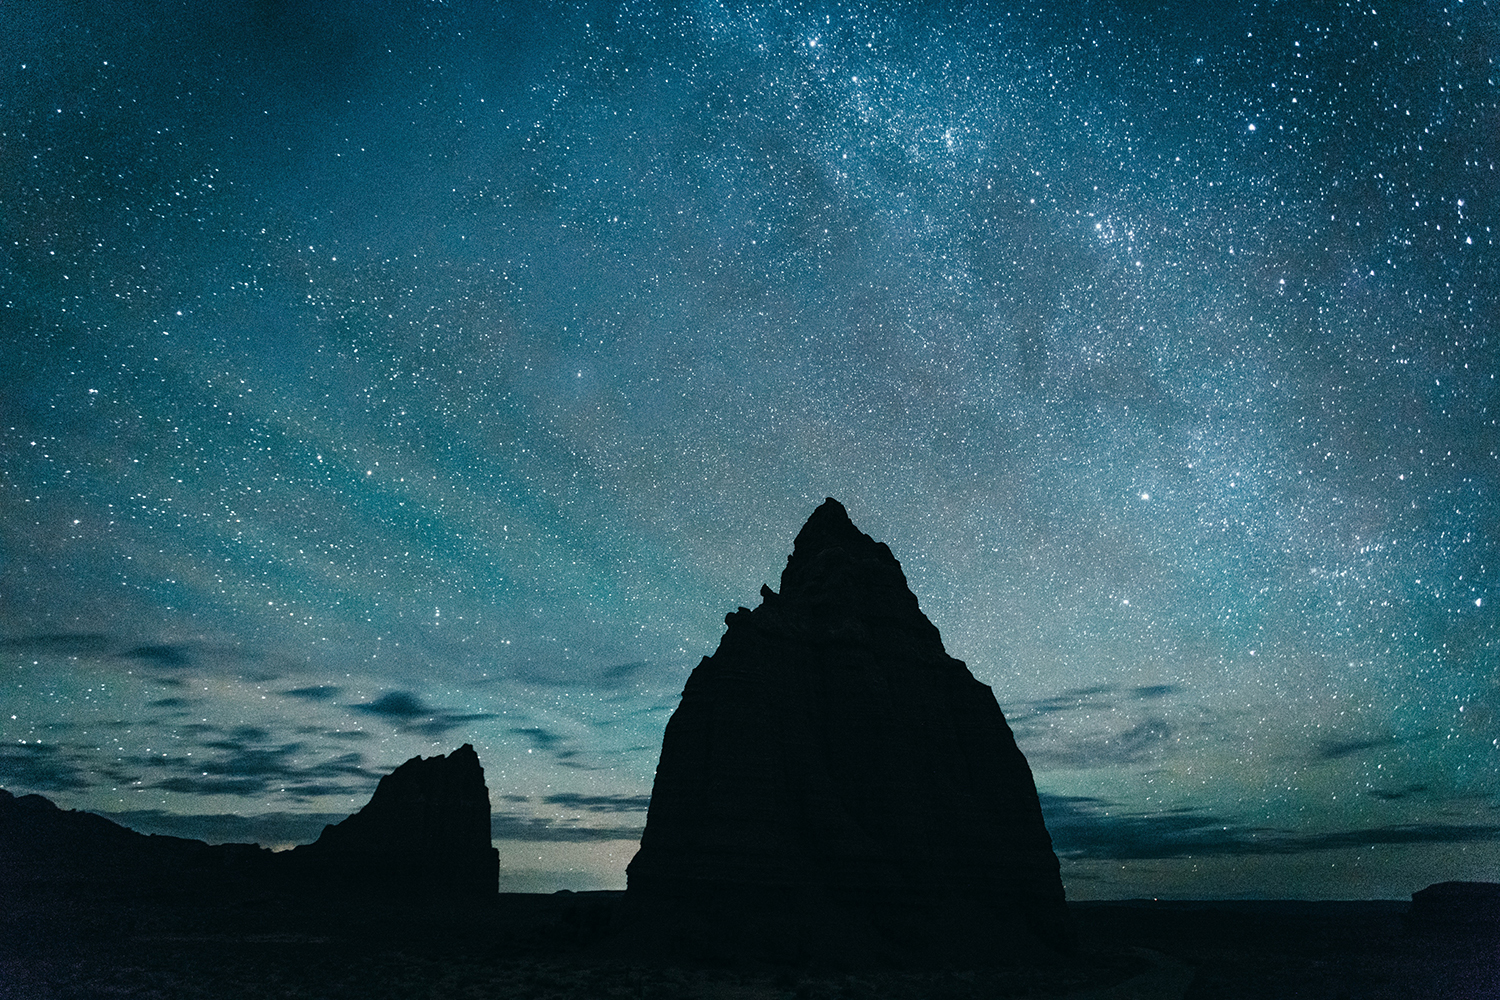 Rock formations silhouetted against a starry night